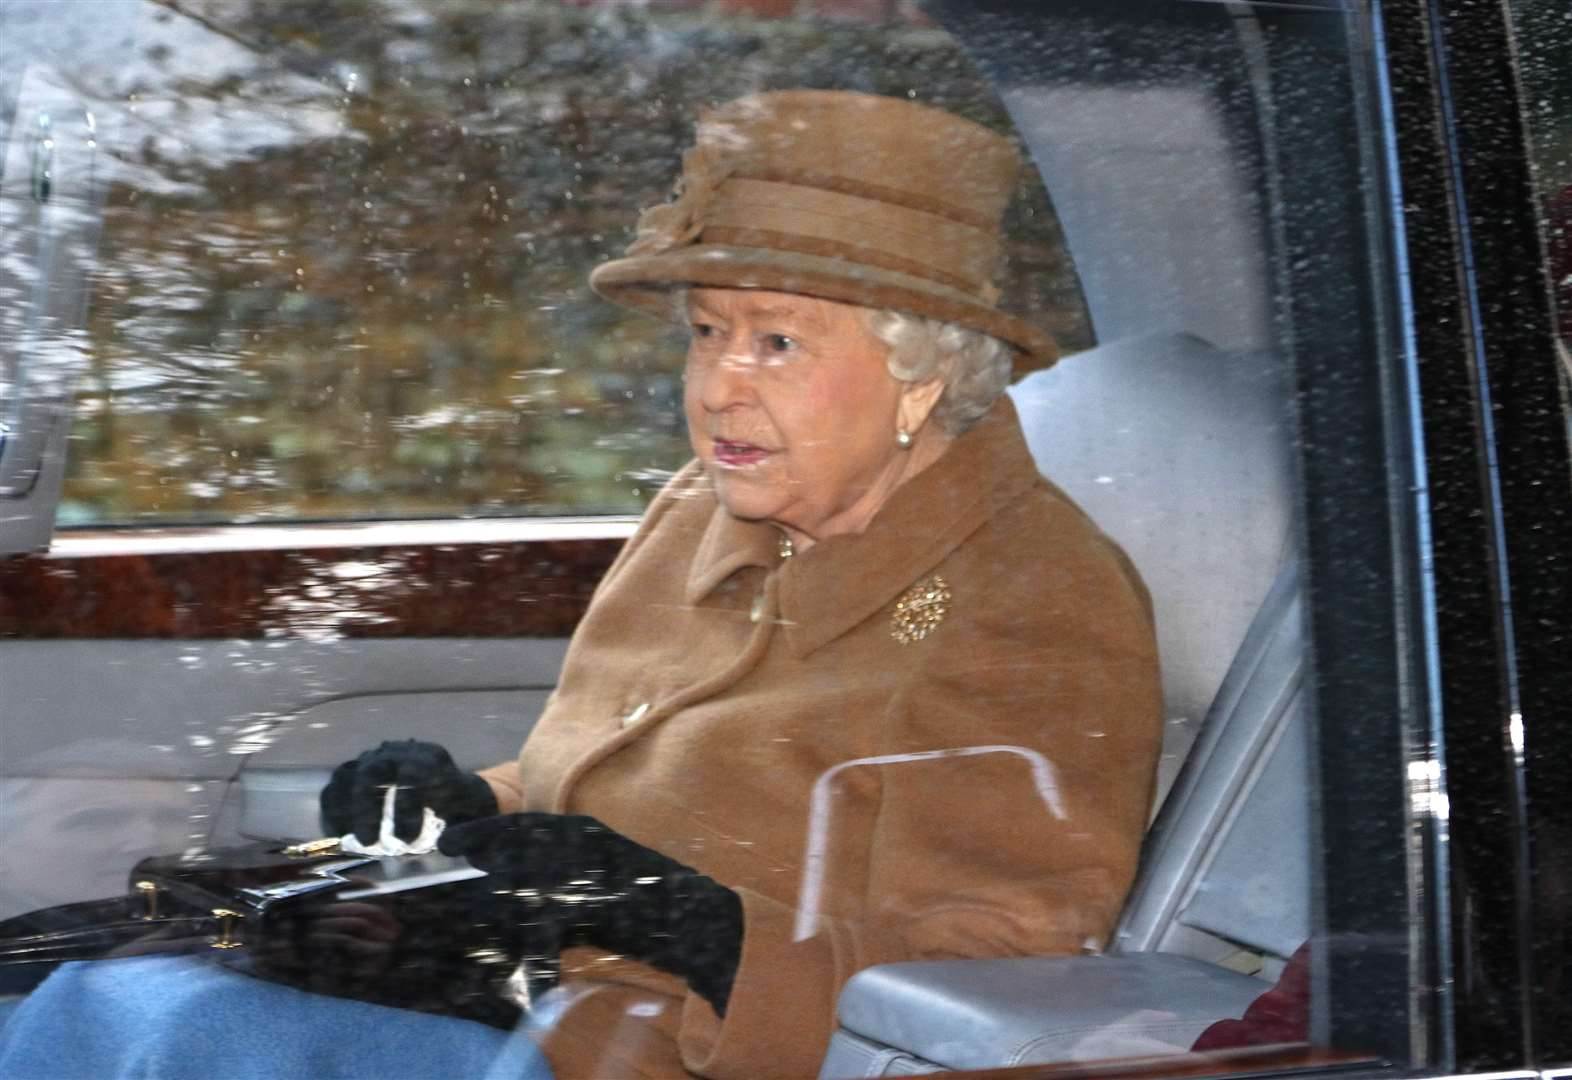 Queen attends Sandringham church ahead of reported 'summit' with Prince Harry